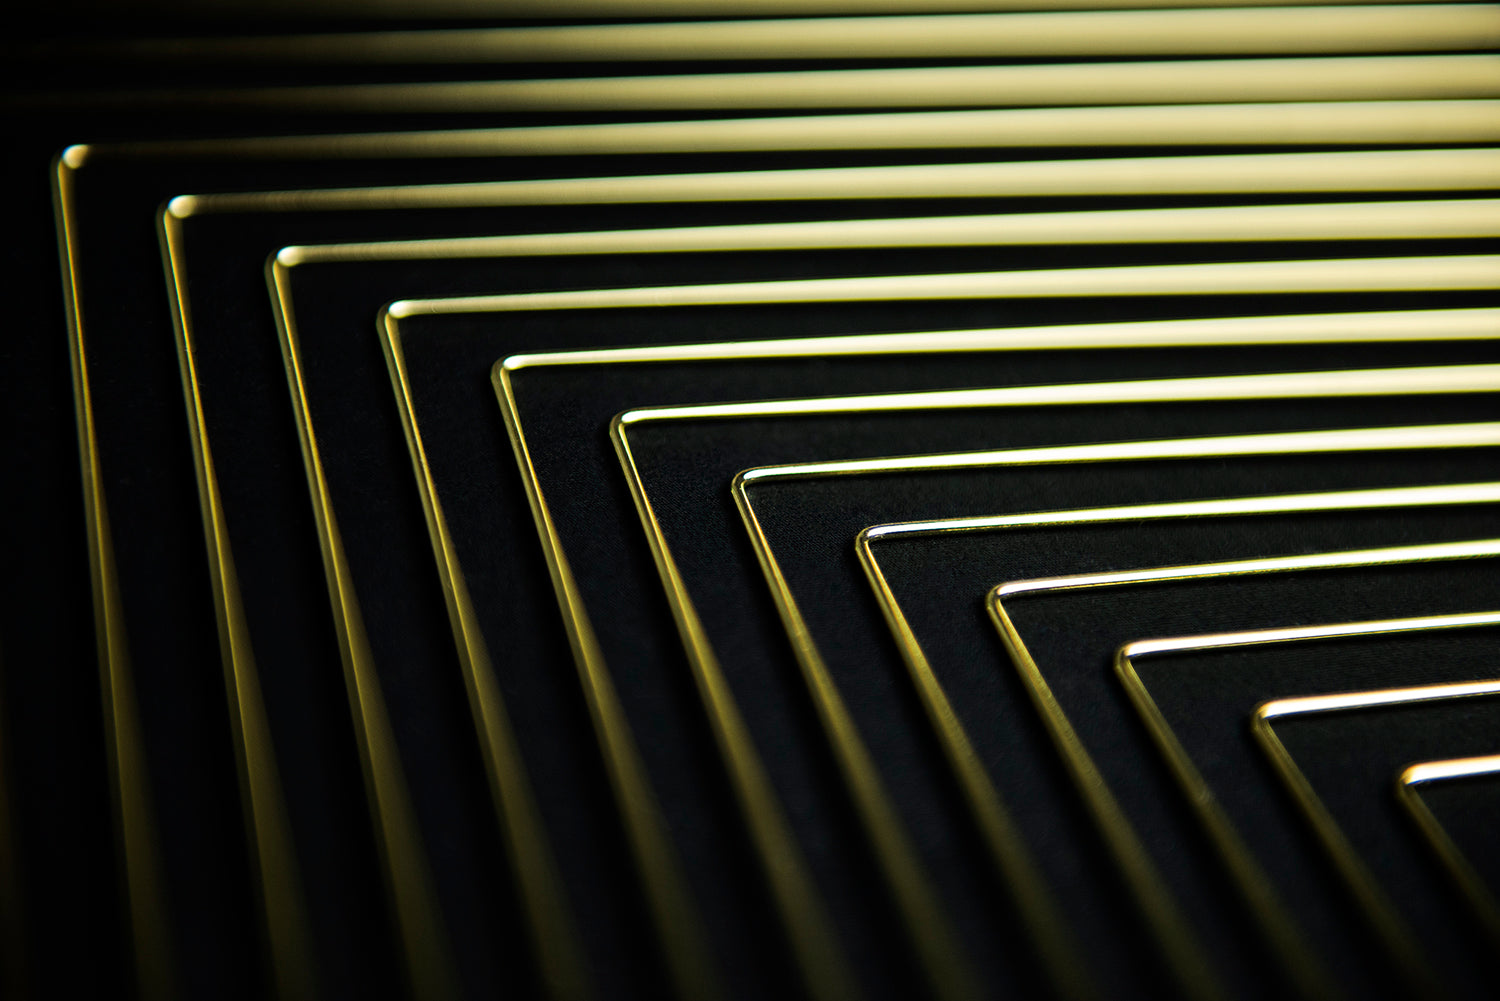 A detail of Square Wave Lunar Gold